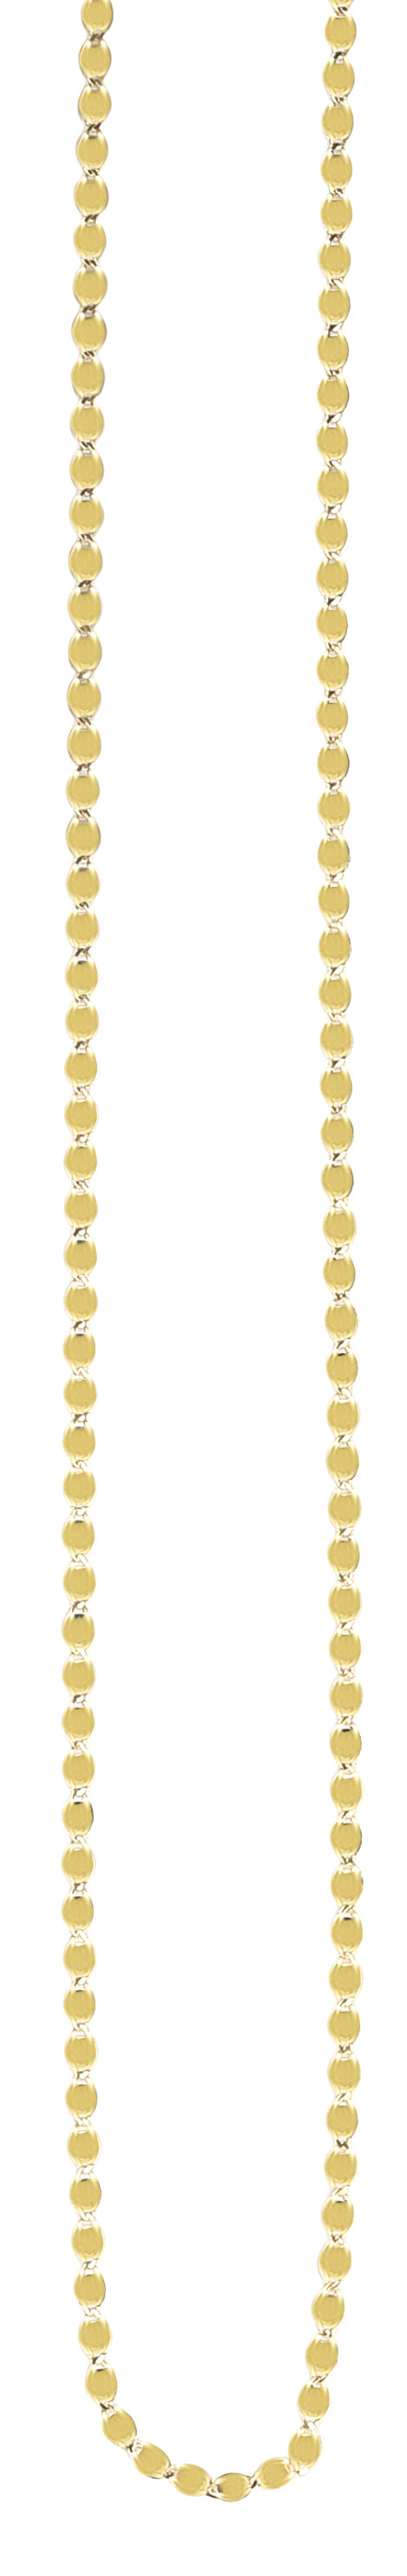 14K Gold 2.2mm Oval Mirror Link Chain